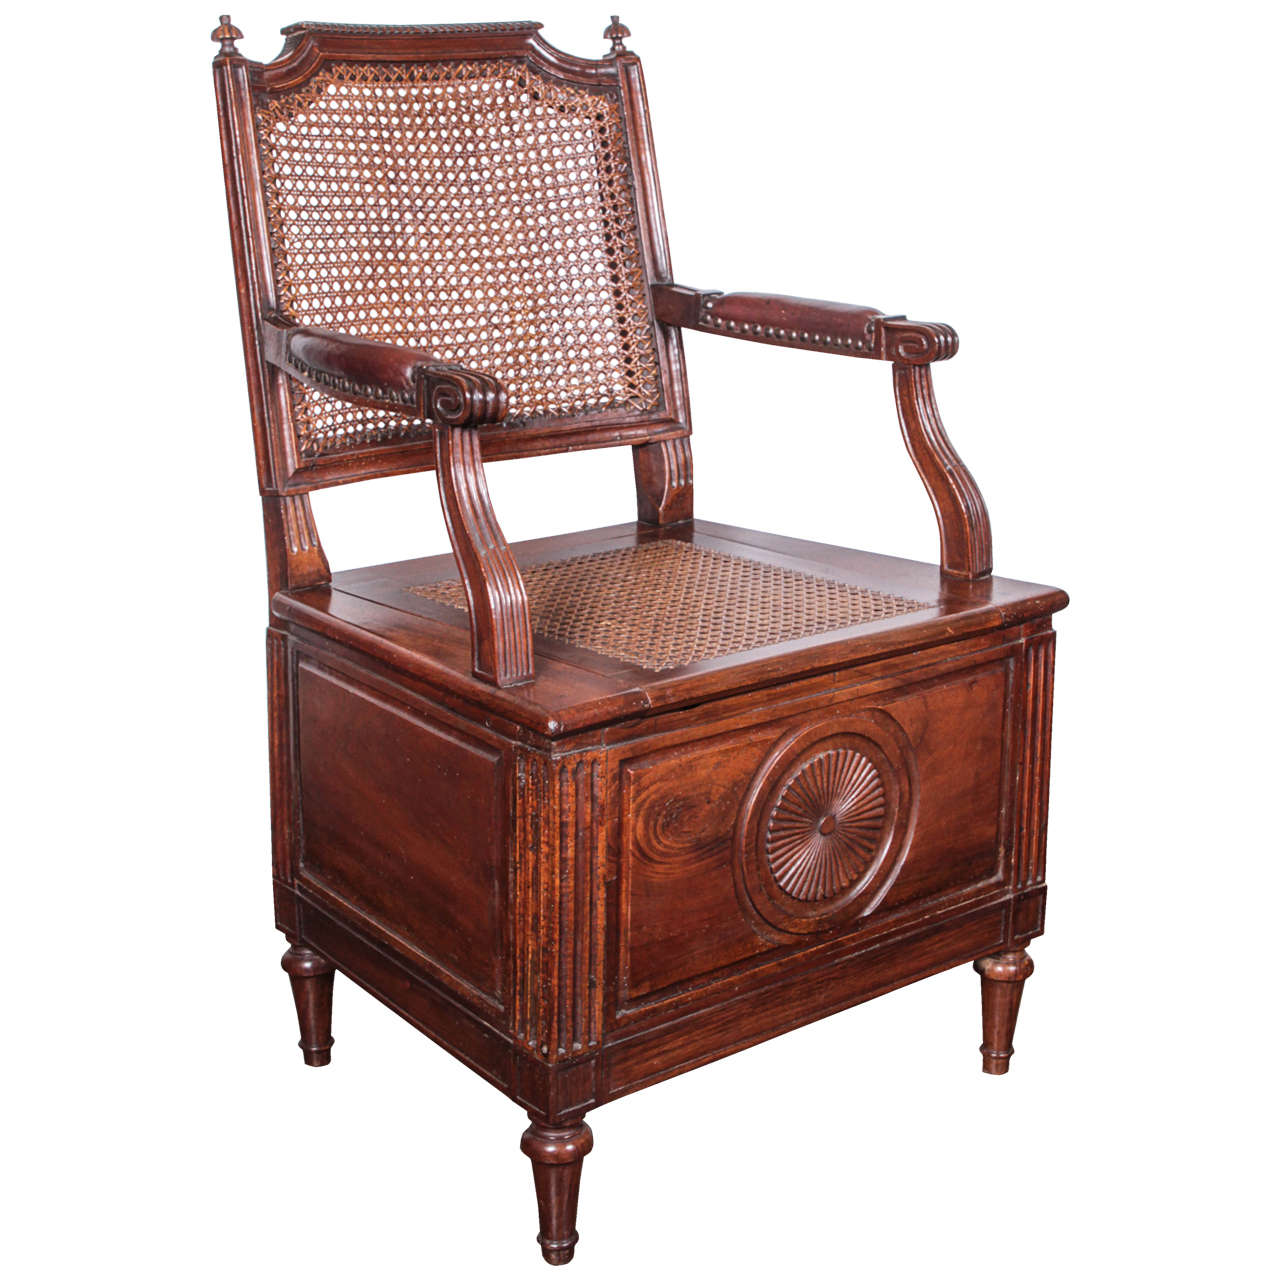 Louis xvi chaise perc e for sale at 1stdibs - Chaise louis xvi pas cher ...